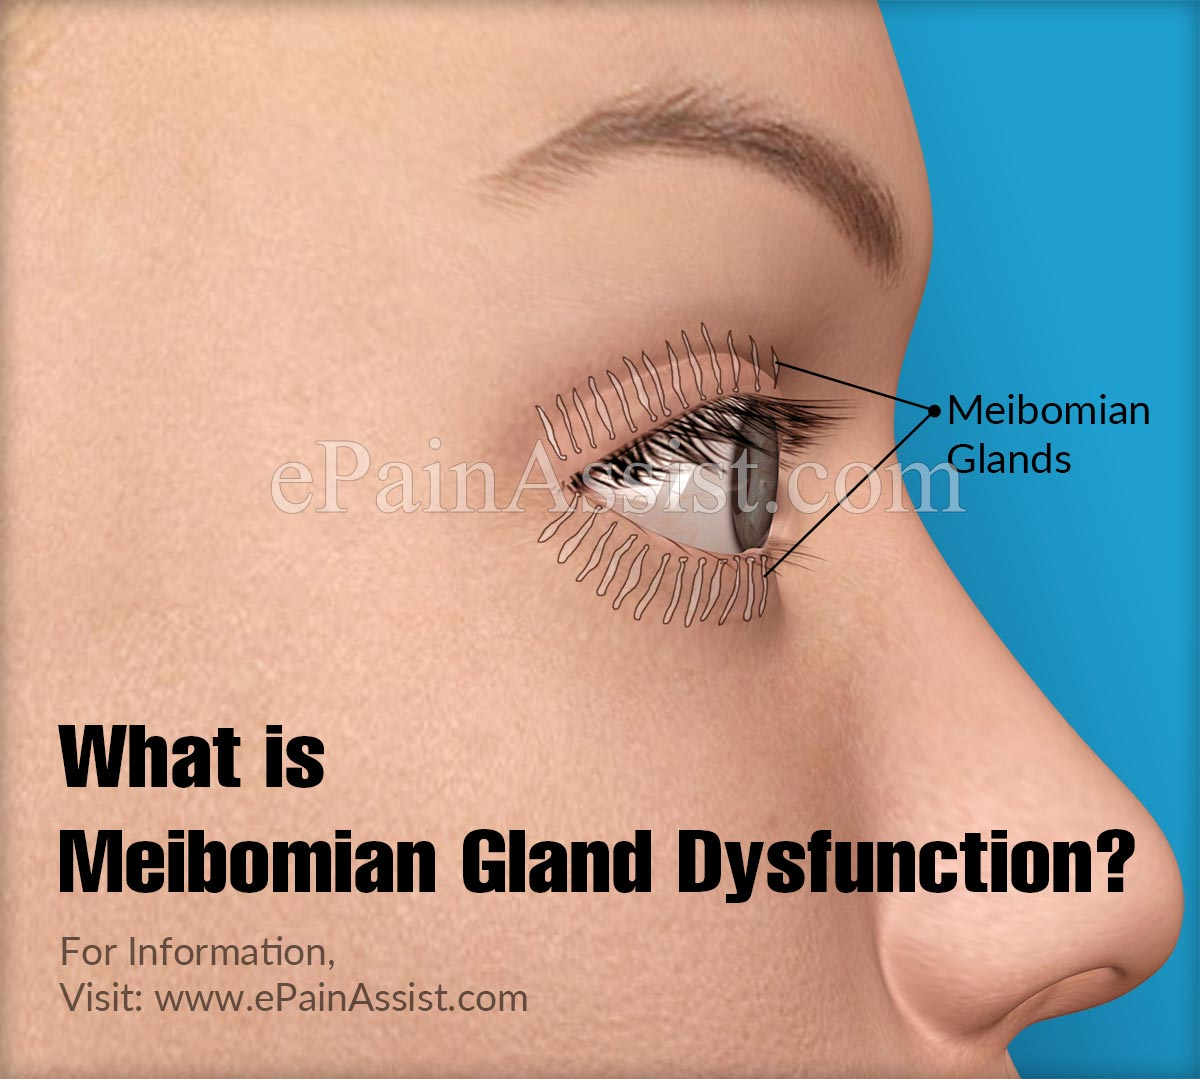 What is Meibomian Gland Dysfunction?